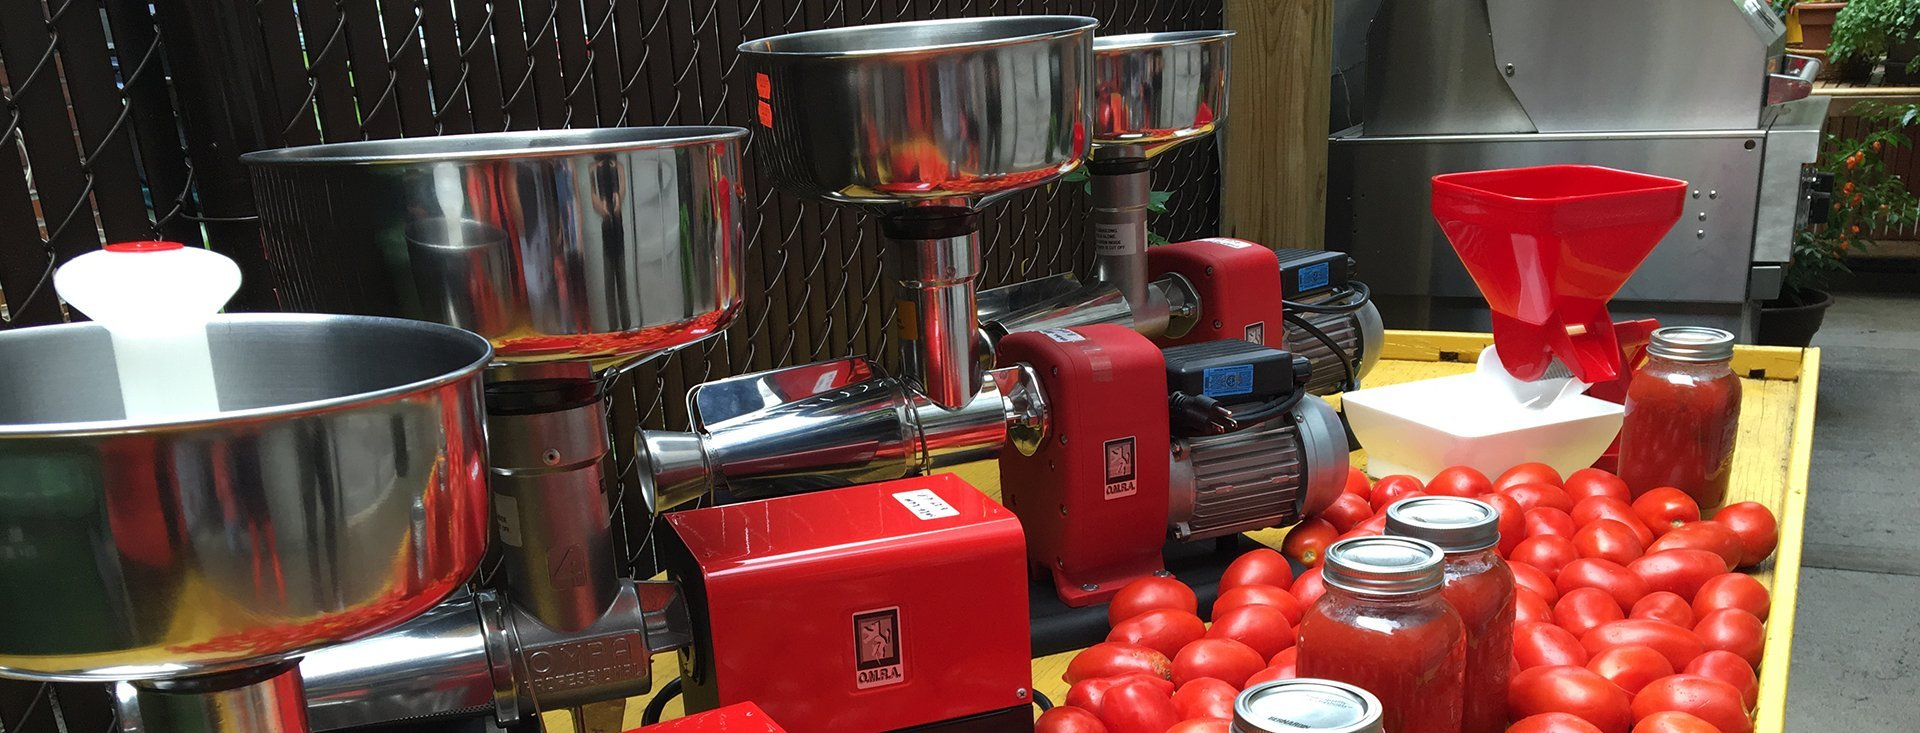 machines a tomates